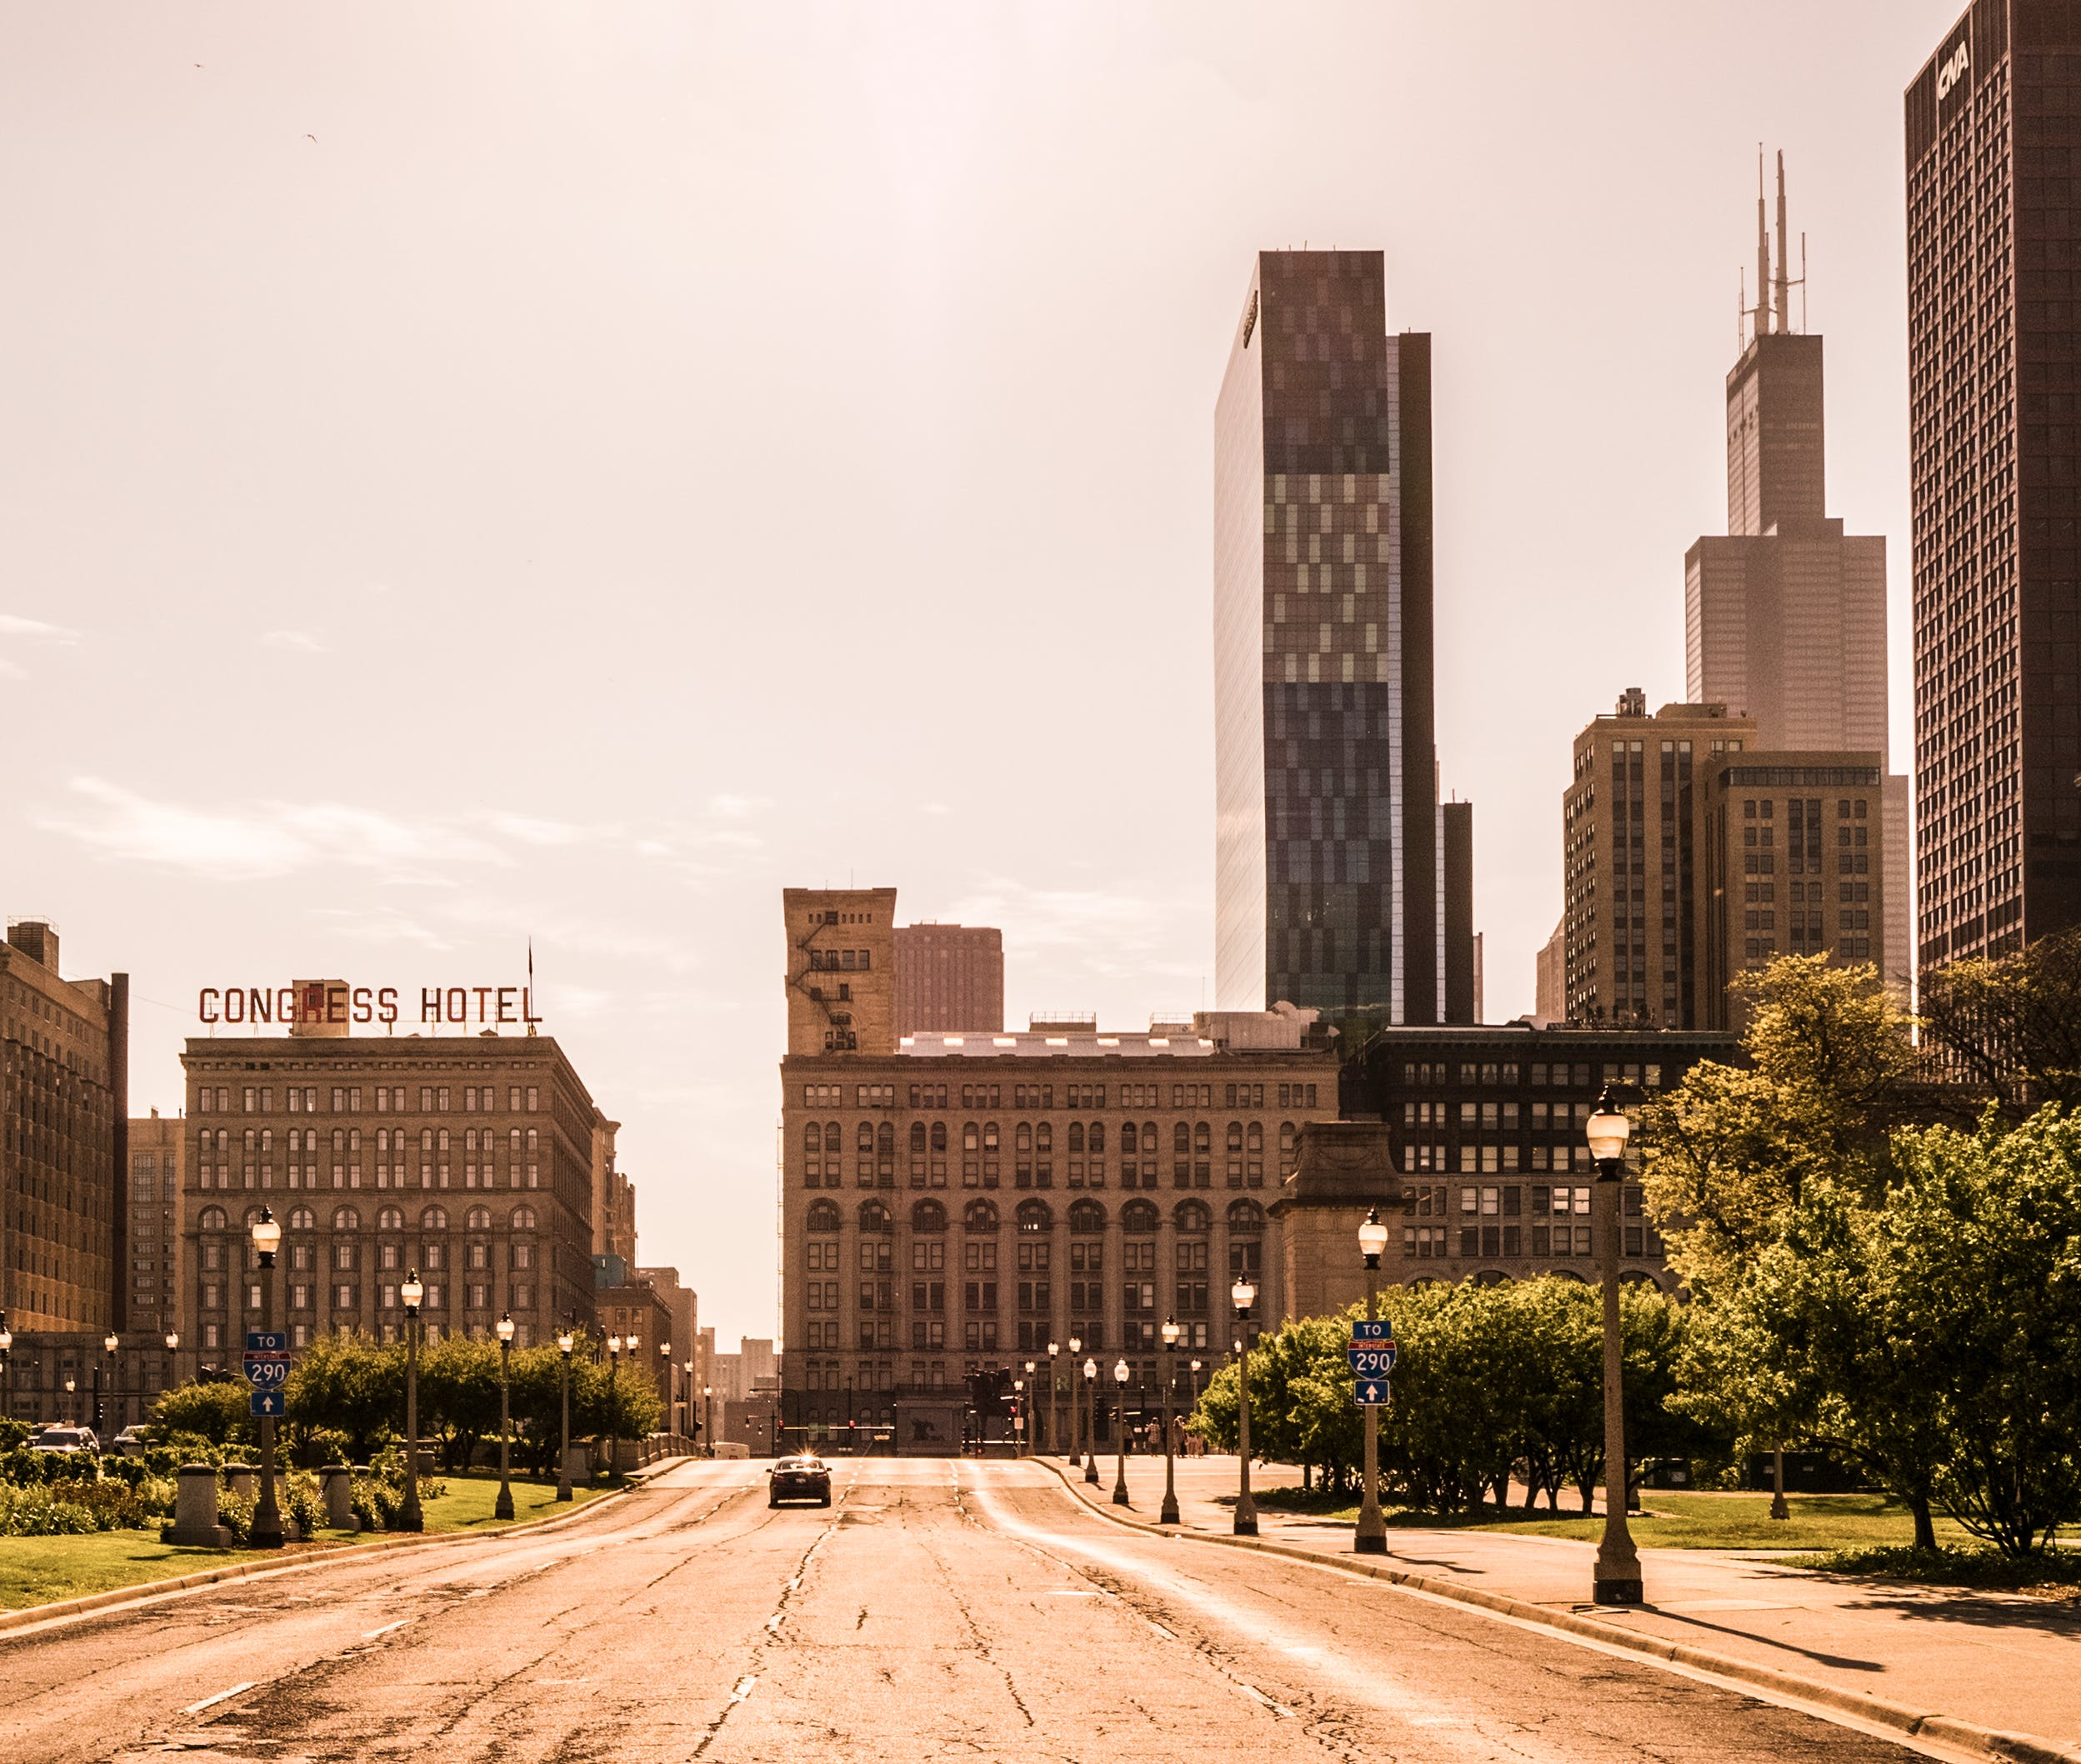 Free stock photo of city, road, street, buildings